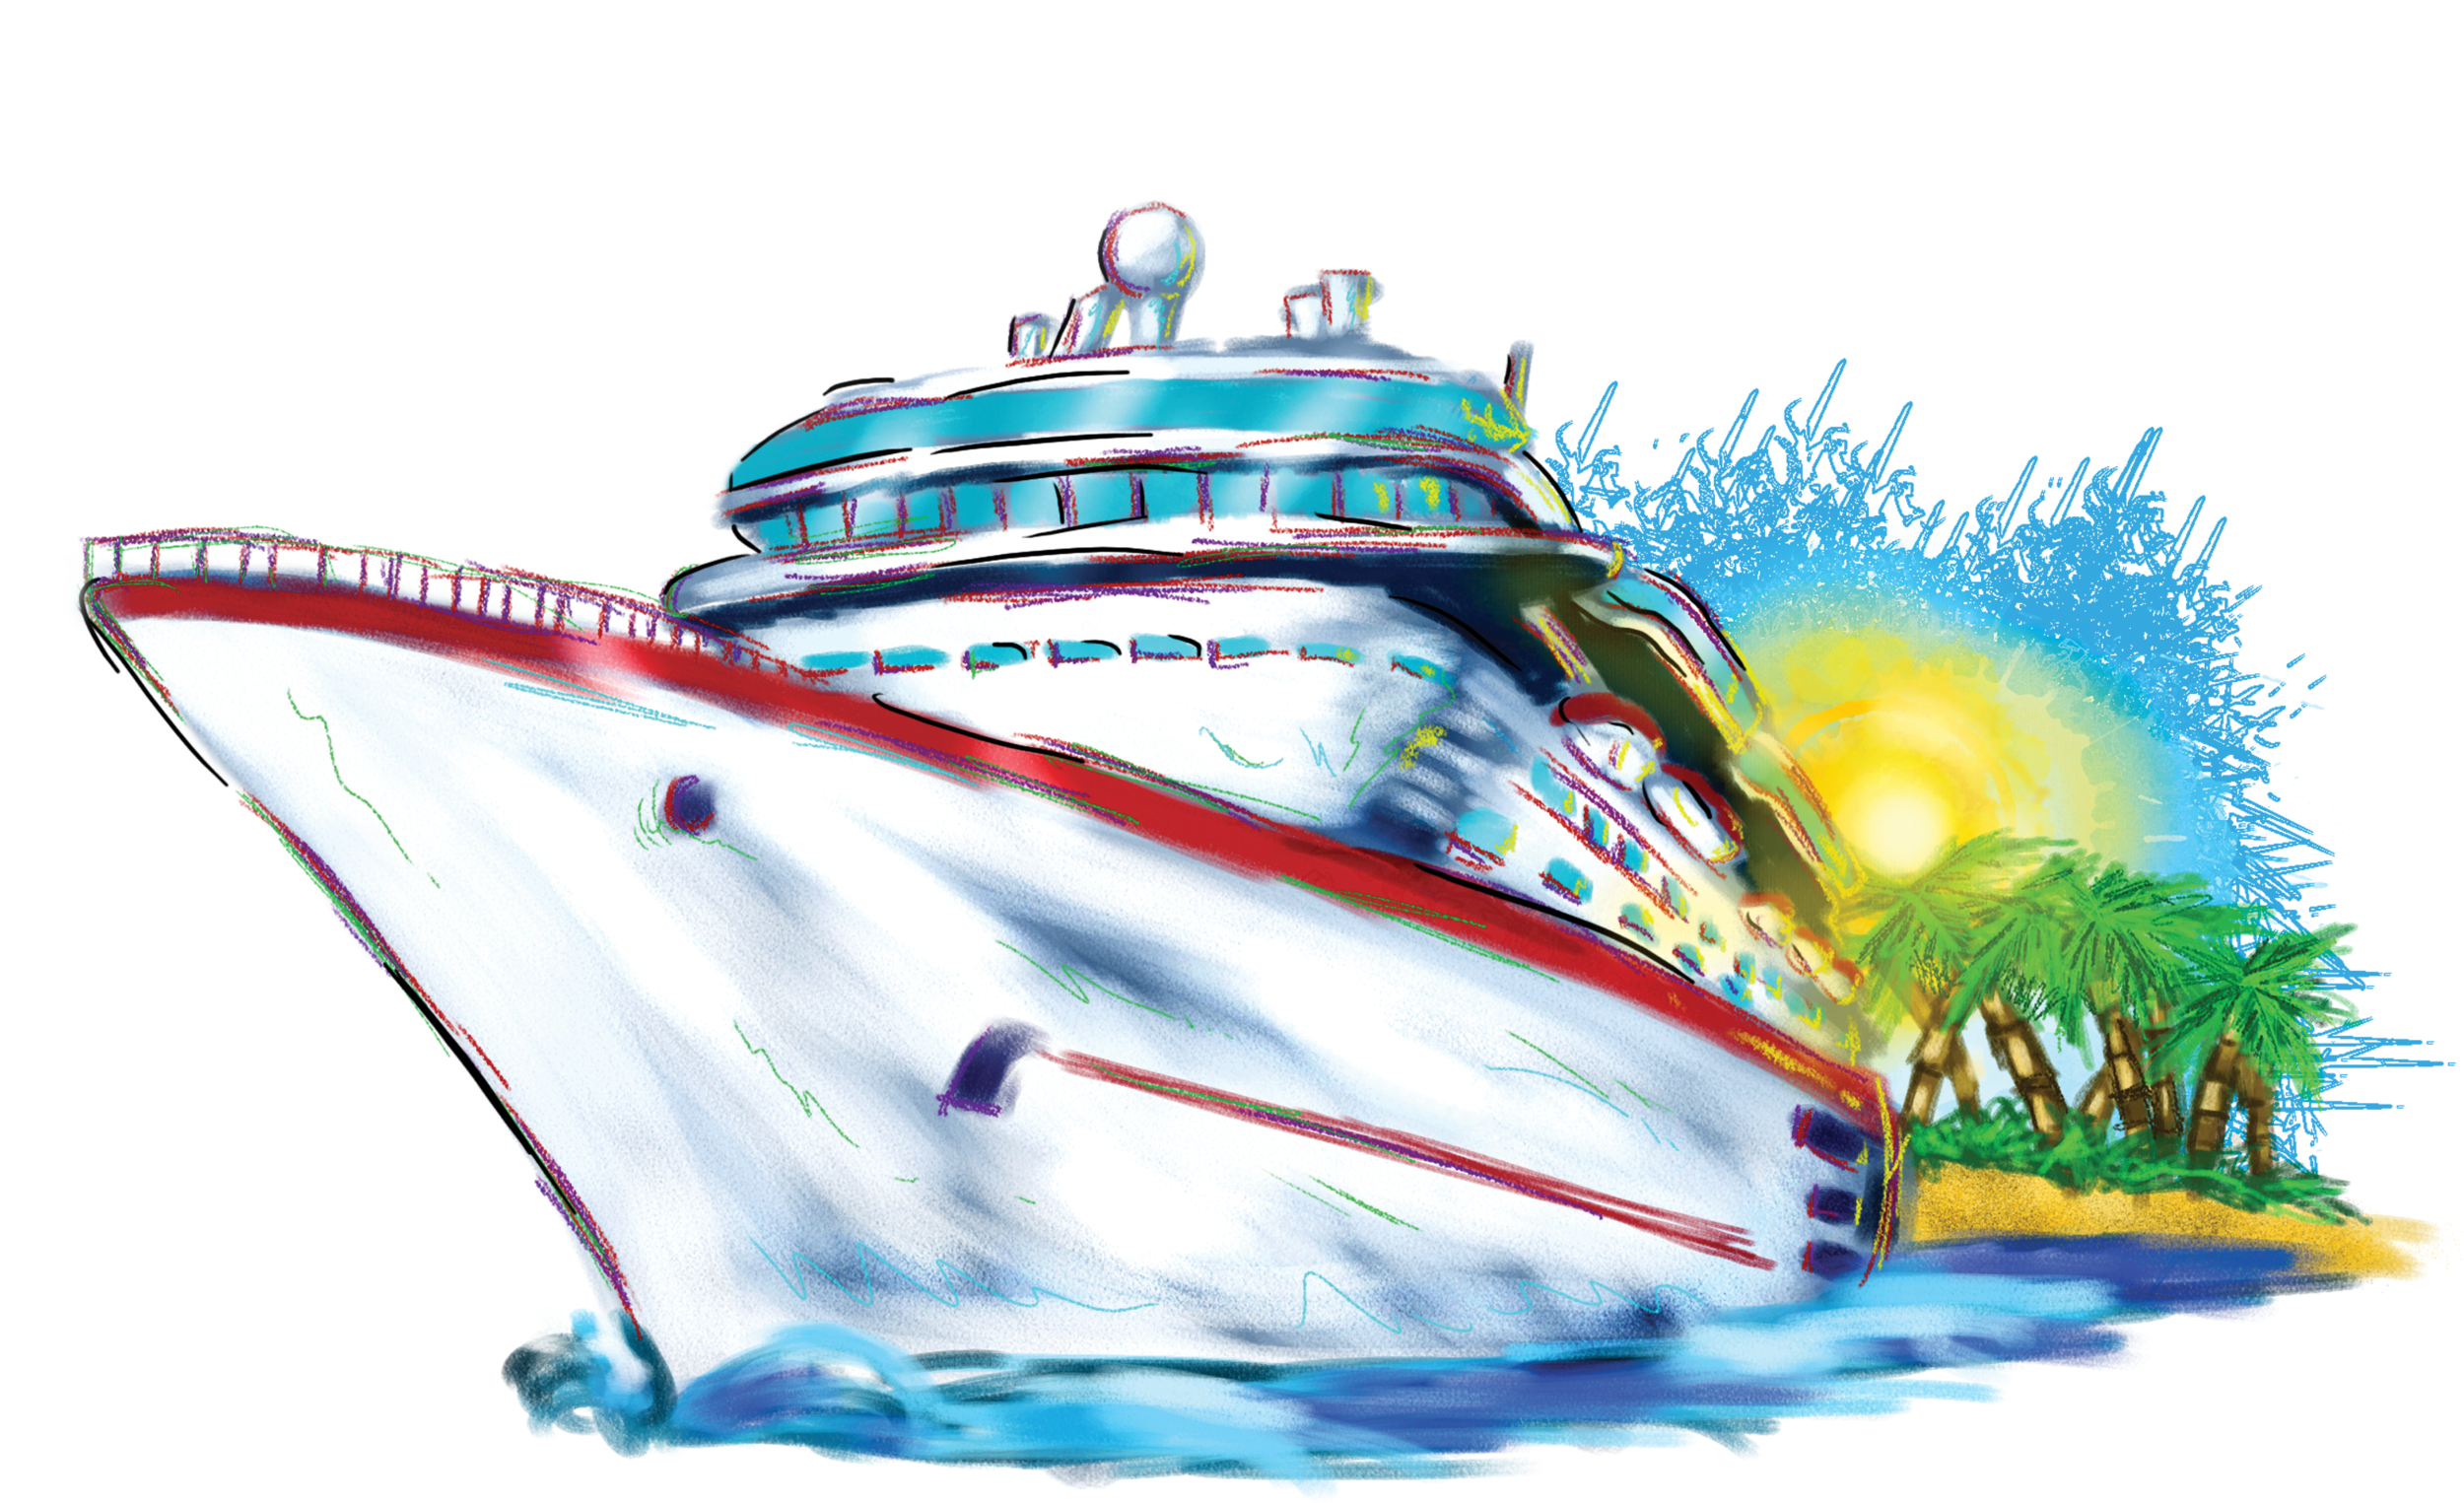 Boat party clipart images gallery for Free Download.